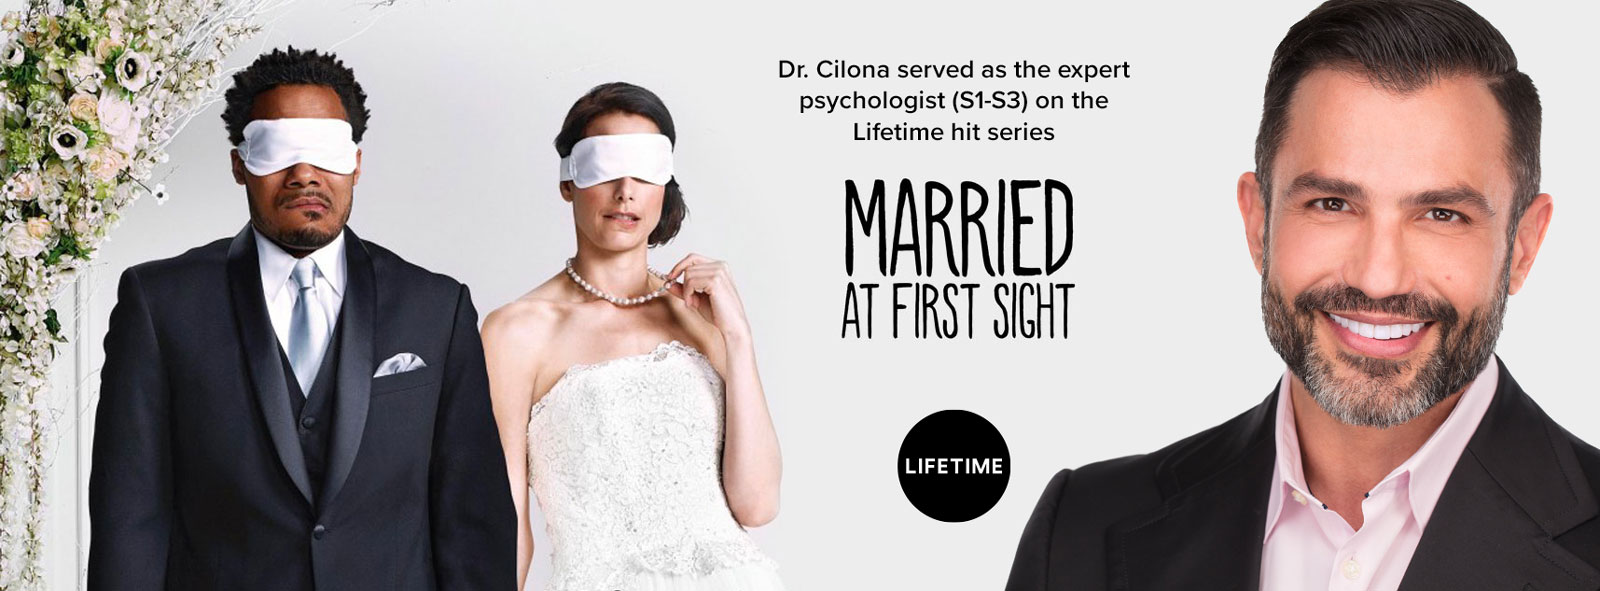 dr-joseph-cilona-married-at-first-sight-psychologist-2